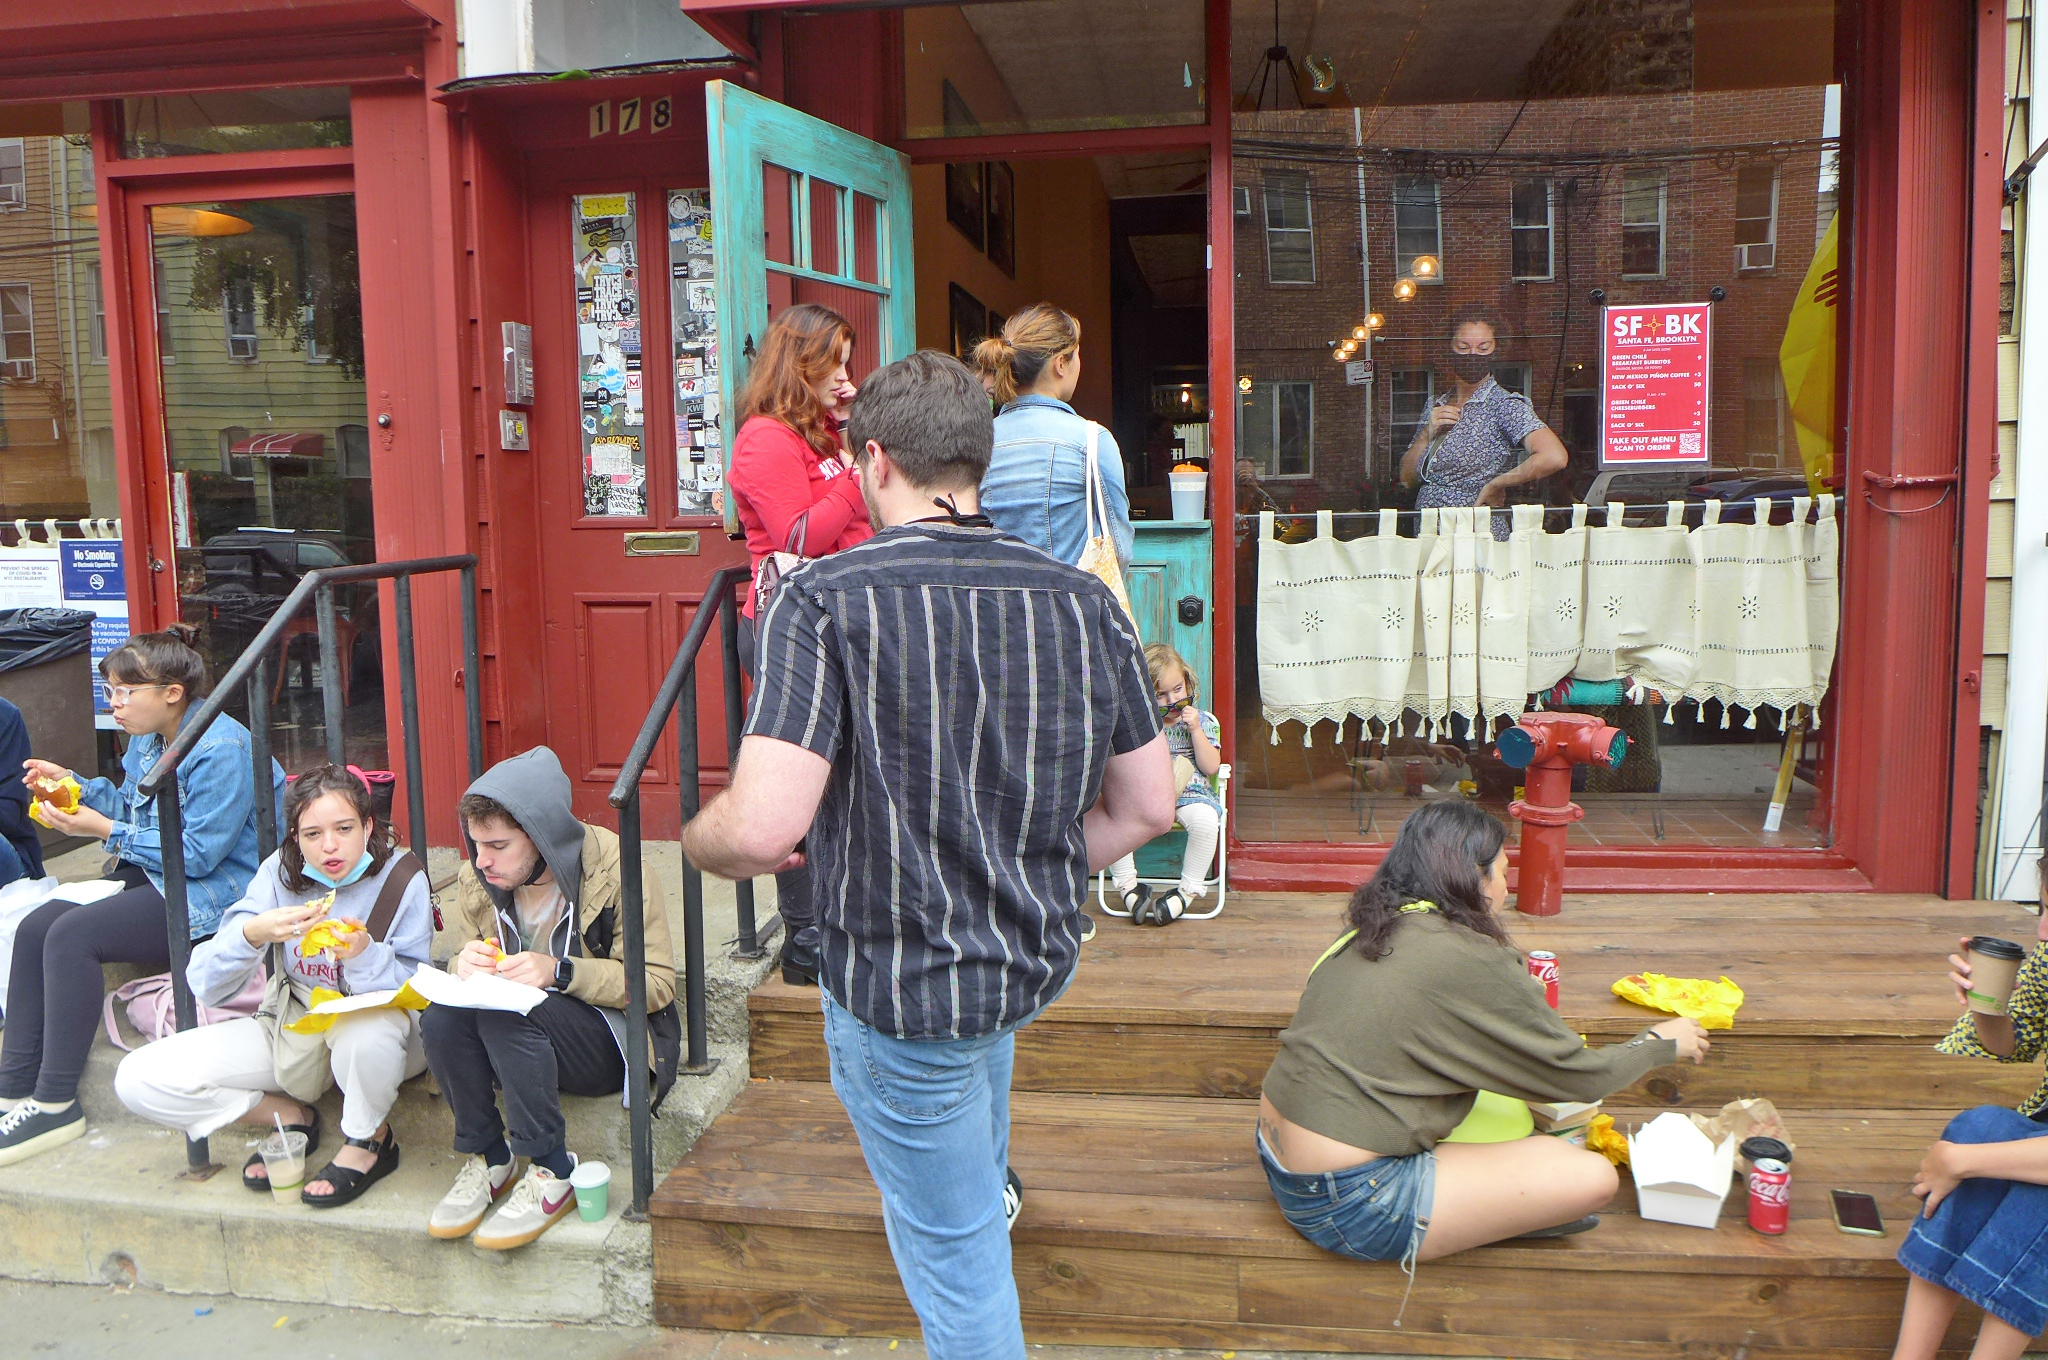 A front porch with several people eating.